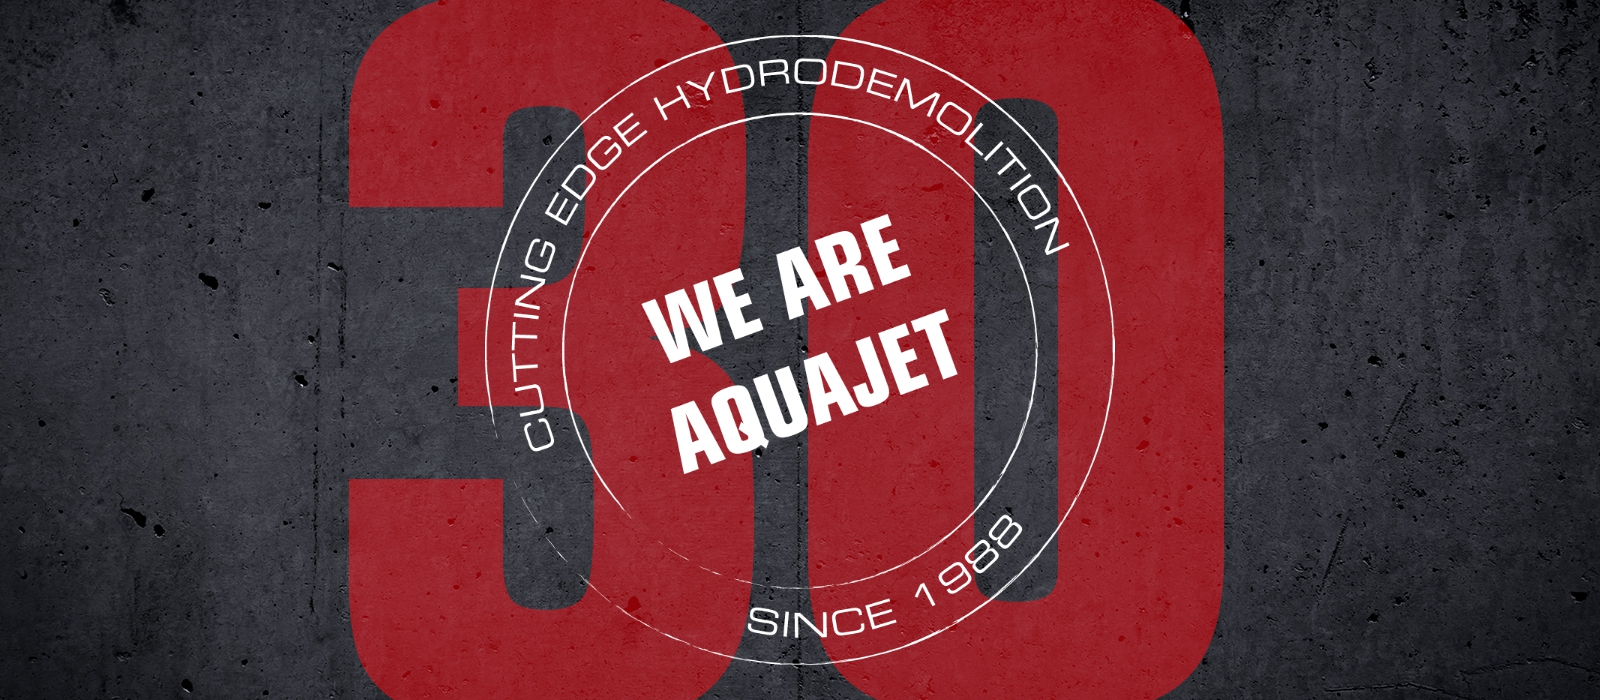 Aquajet 30 aqua cutter training academy